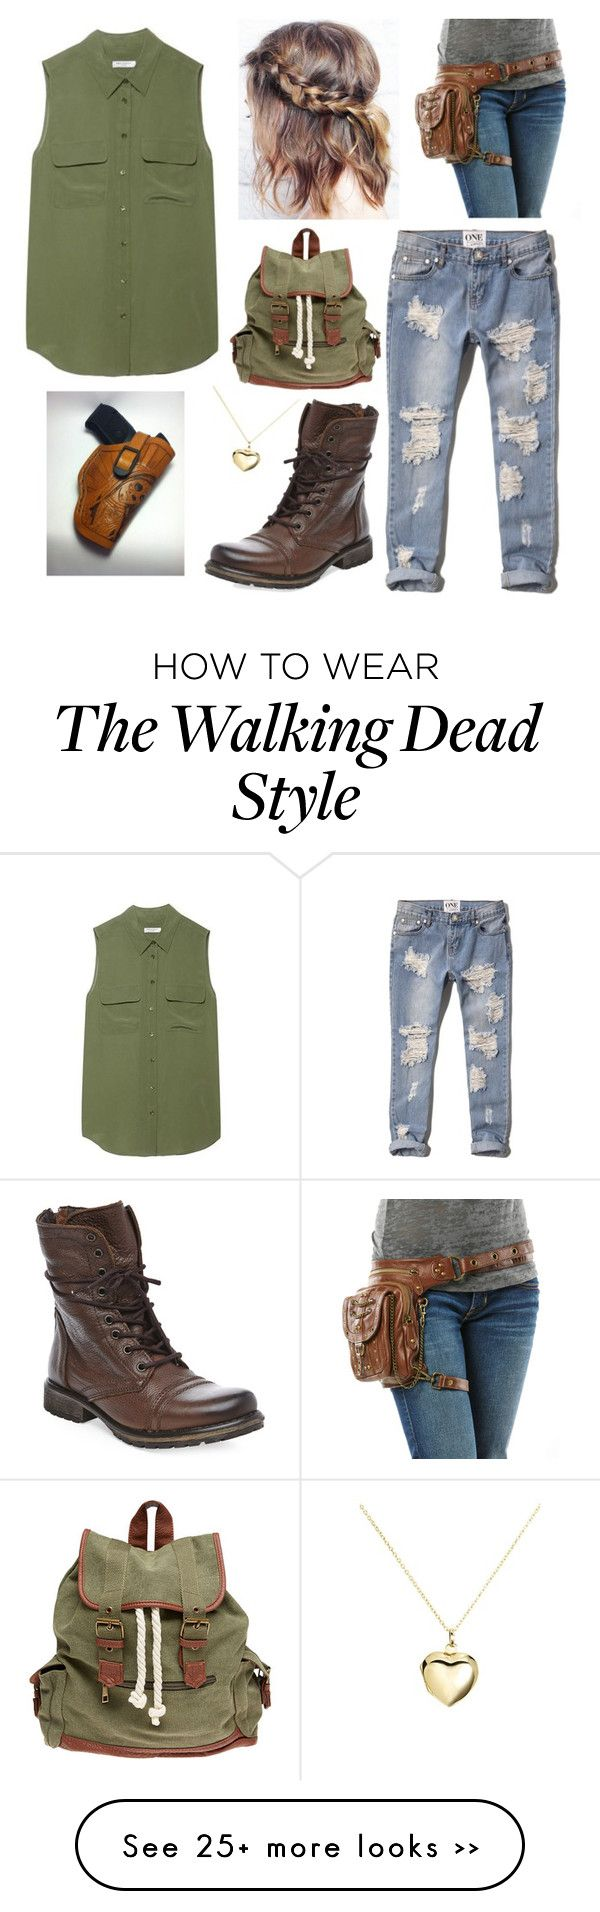 Walking dead converse shoes for sale -  The Walking Dead Cosplay By My Abbs On Polyvore Featuring Equipment Abercrombie